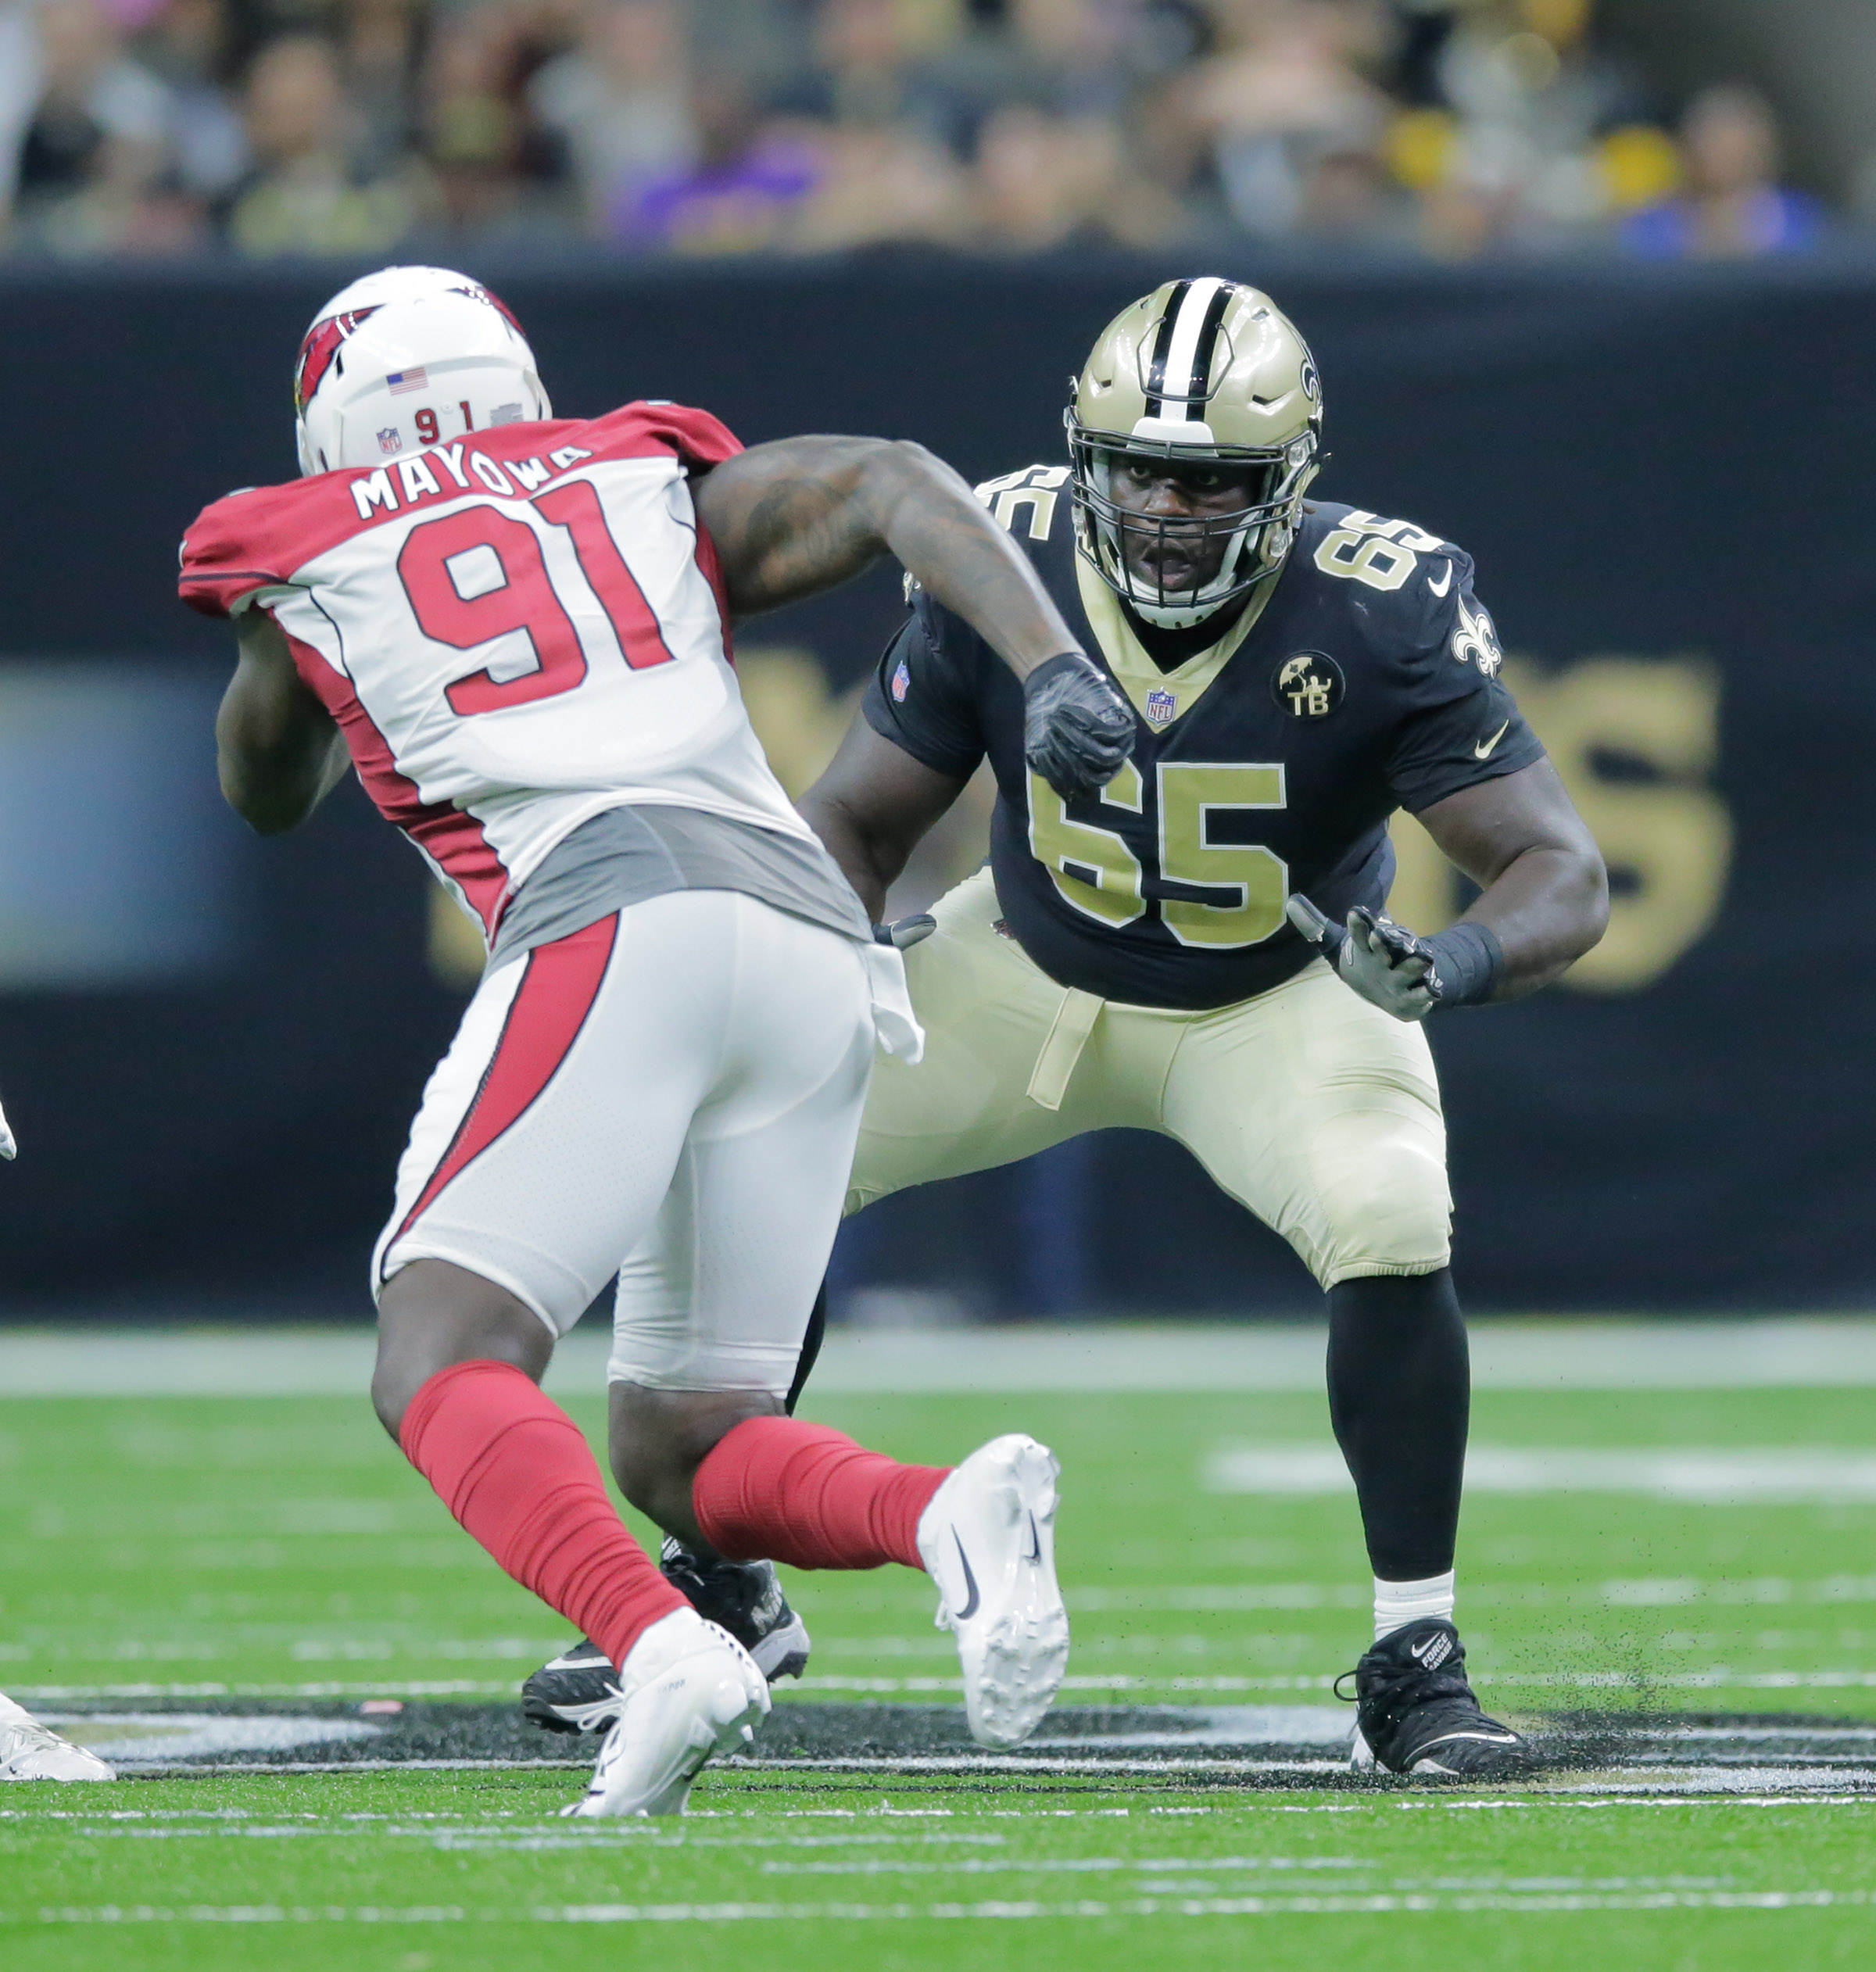 New Orleans Saints offensive tackle Michael Ola (65) during a preseason game against the Arizona Cardinals at the Mercedes-Benz Superdome in New Orleans, La. Friday, Aug. 17, 2018. (Photo by David Grunfeld, NOLA.com | The Times-Picayune)